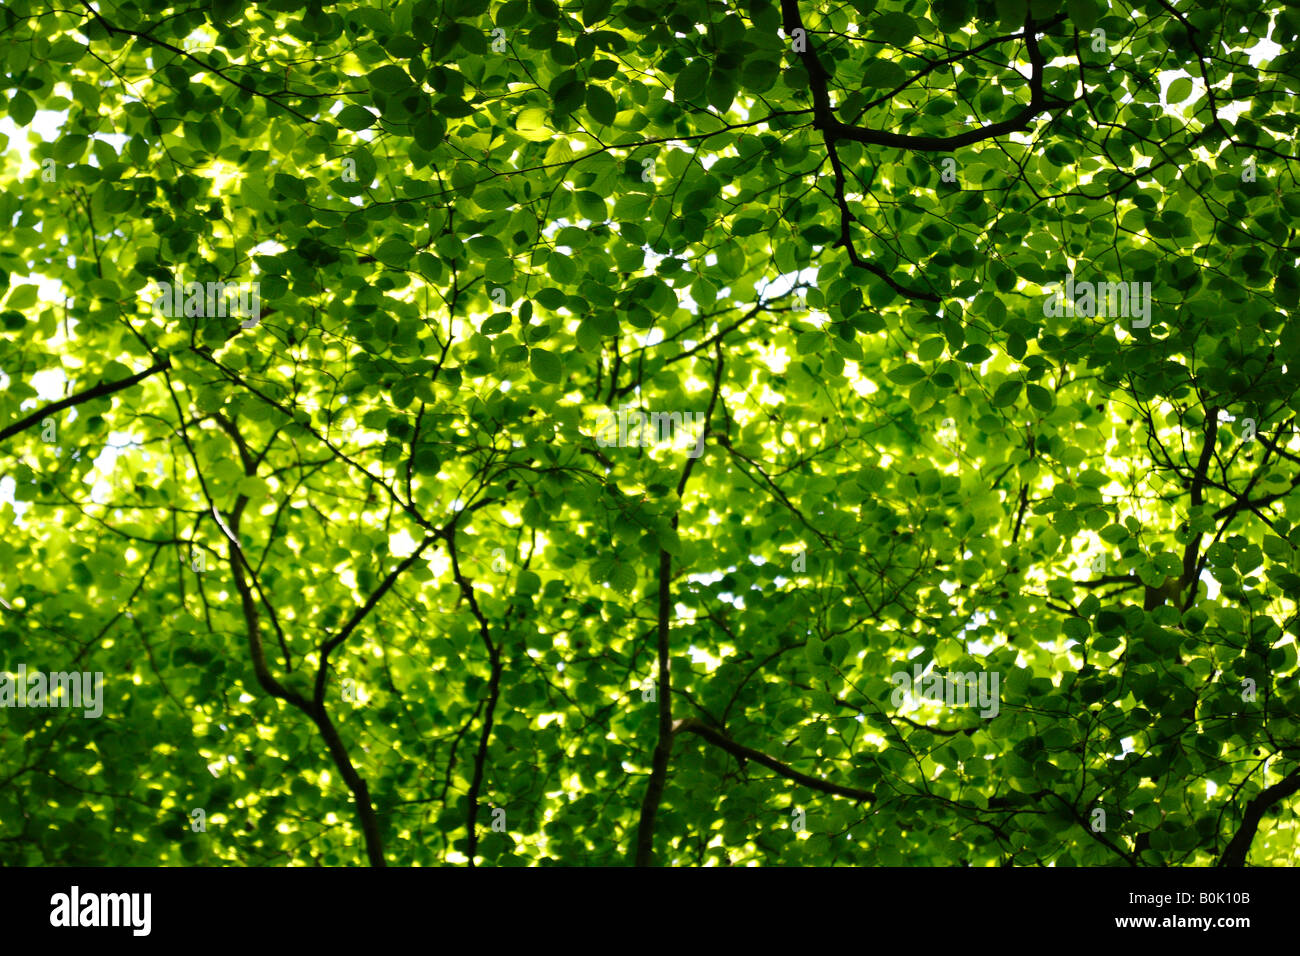 Beech tree canopy and green leaves in spring sunlight, England, UK - Stock Image